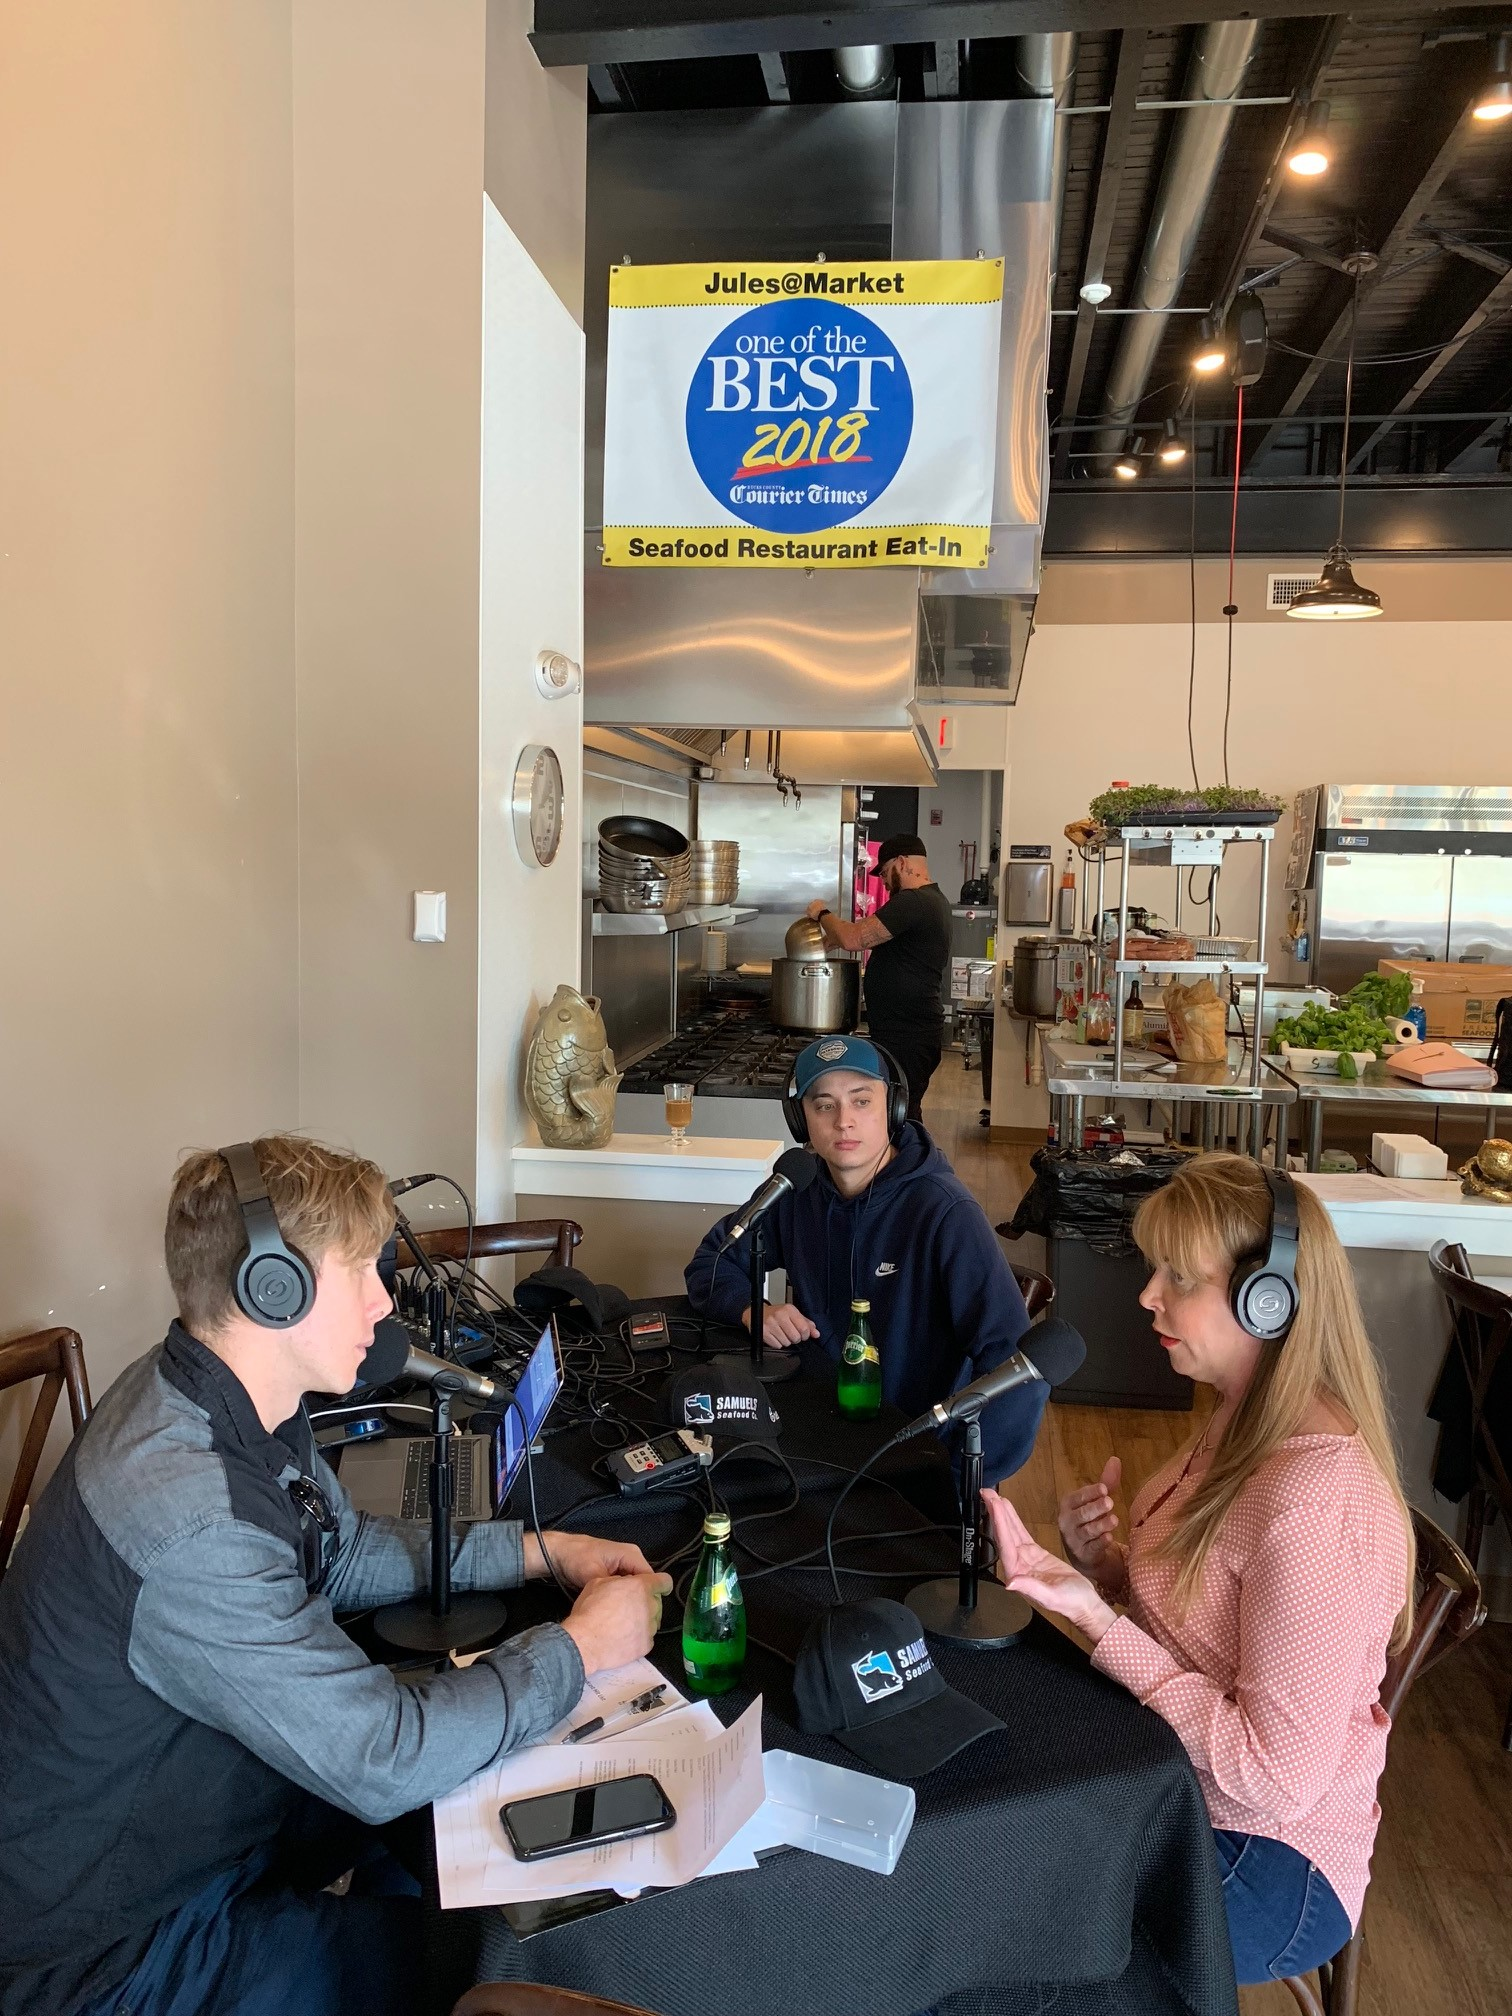 Episode 026 – Jules@Market, Best of Philly Seafood